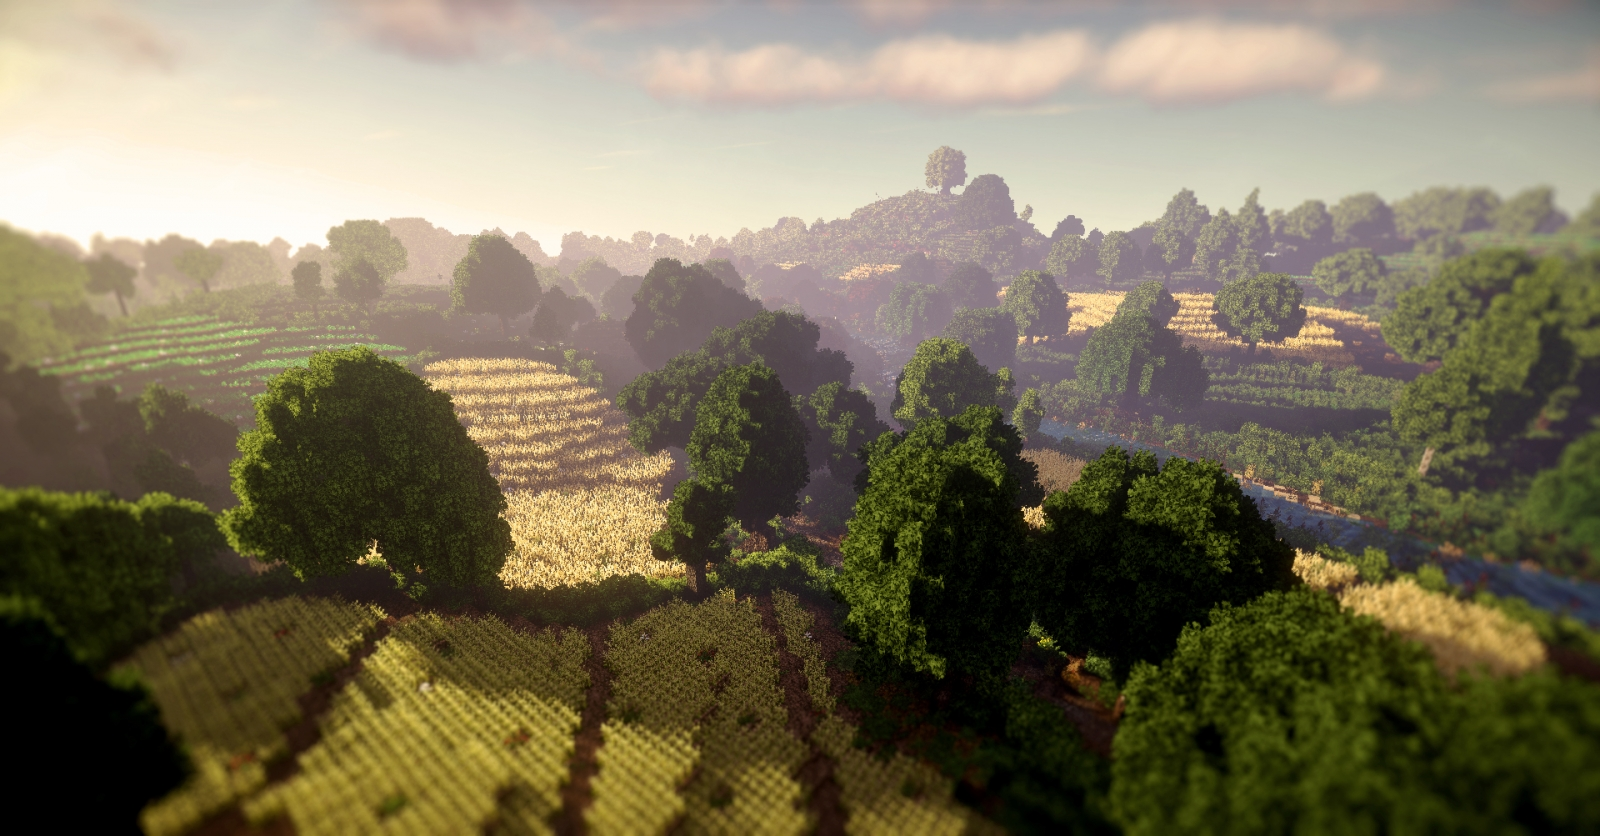 Minecraft users recreate Lord Of The Rings setting The Shire in hit PC game